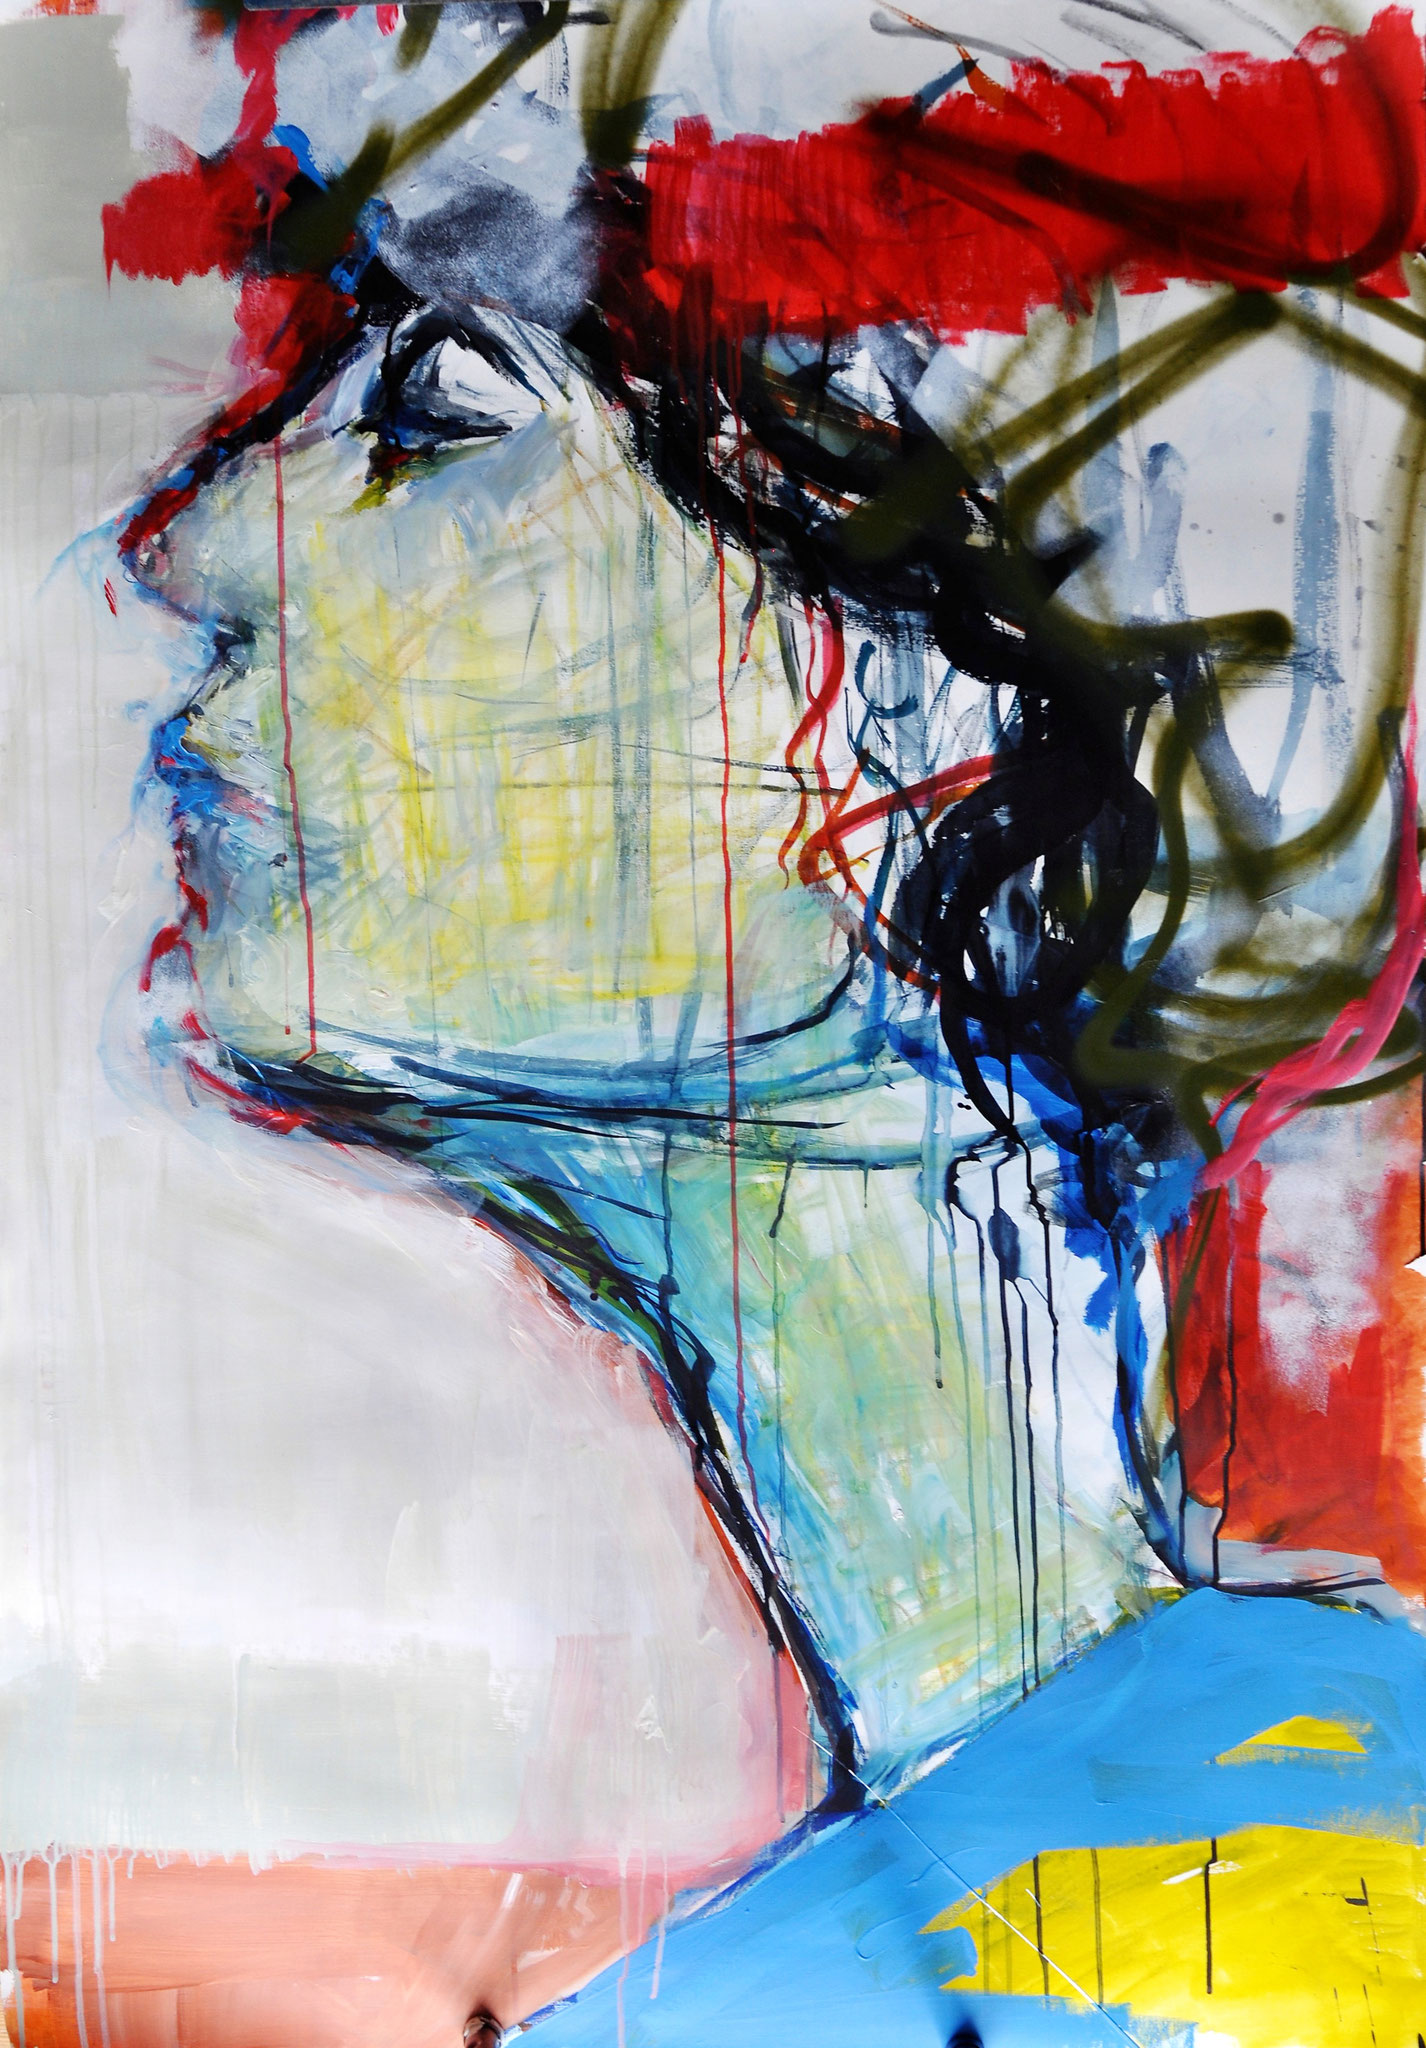 In dictum II (Acrylic, Spray Paint, Ink, Graphite, Oil Pastel, Wax Pastel on Paper, ca. 140x92cm)